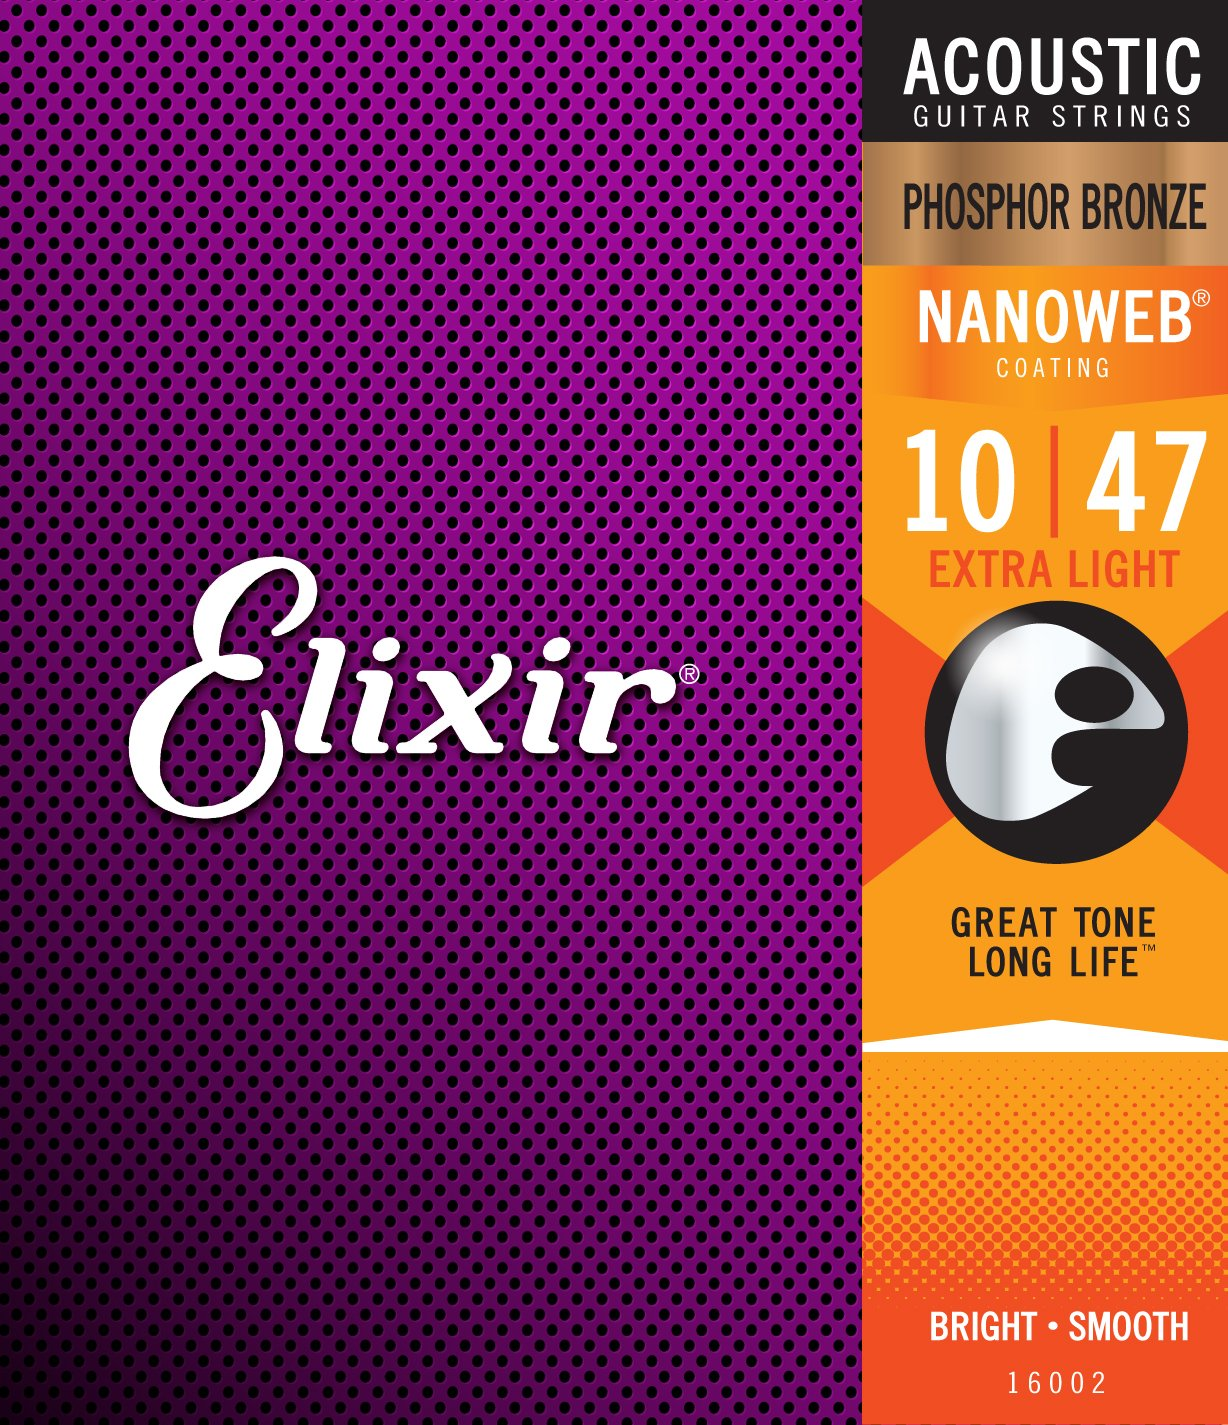 Elixir Nanoweb Coated Phosphor Bronze Guitar Strings, 10-47